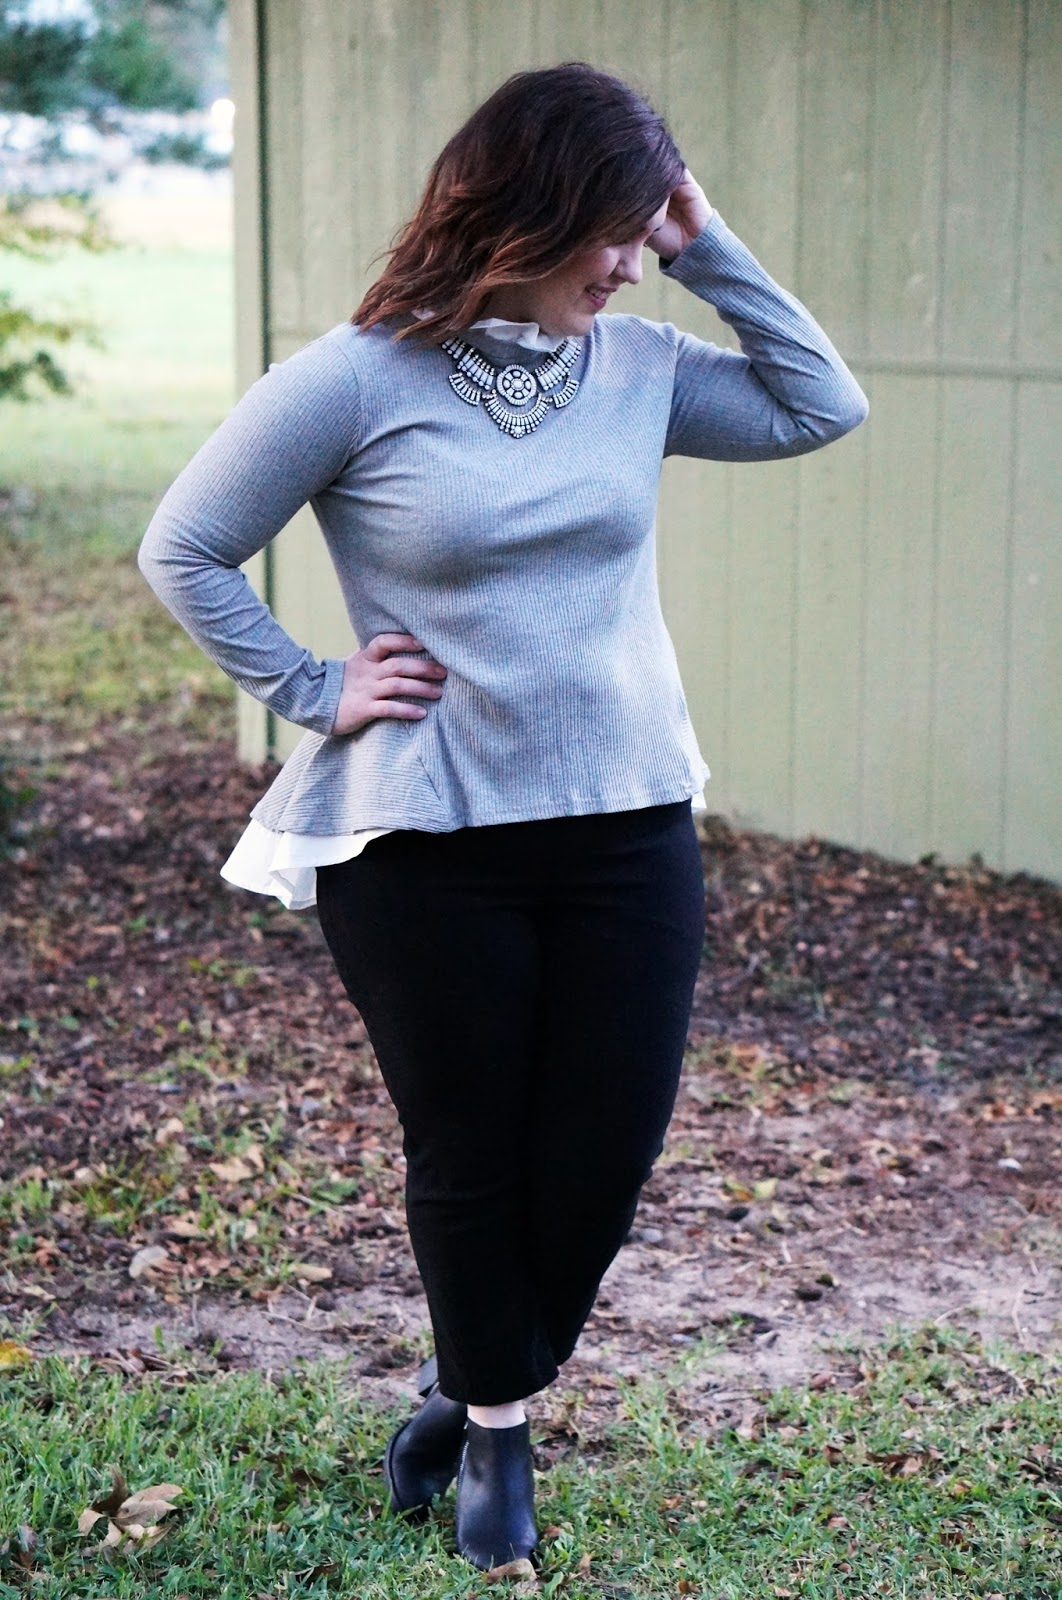 Rebecca Lately Dress Lily Peplum Top Margaret M Pants Stitch Fix Target DV Jameson Booties Happiness Boutique Necklace